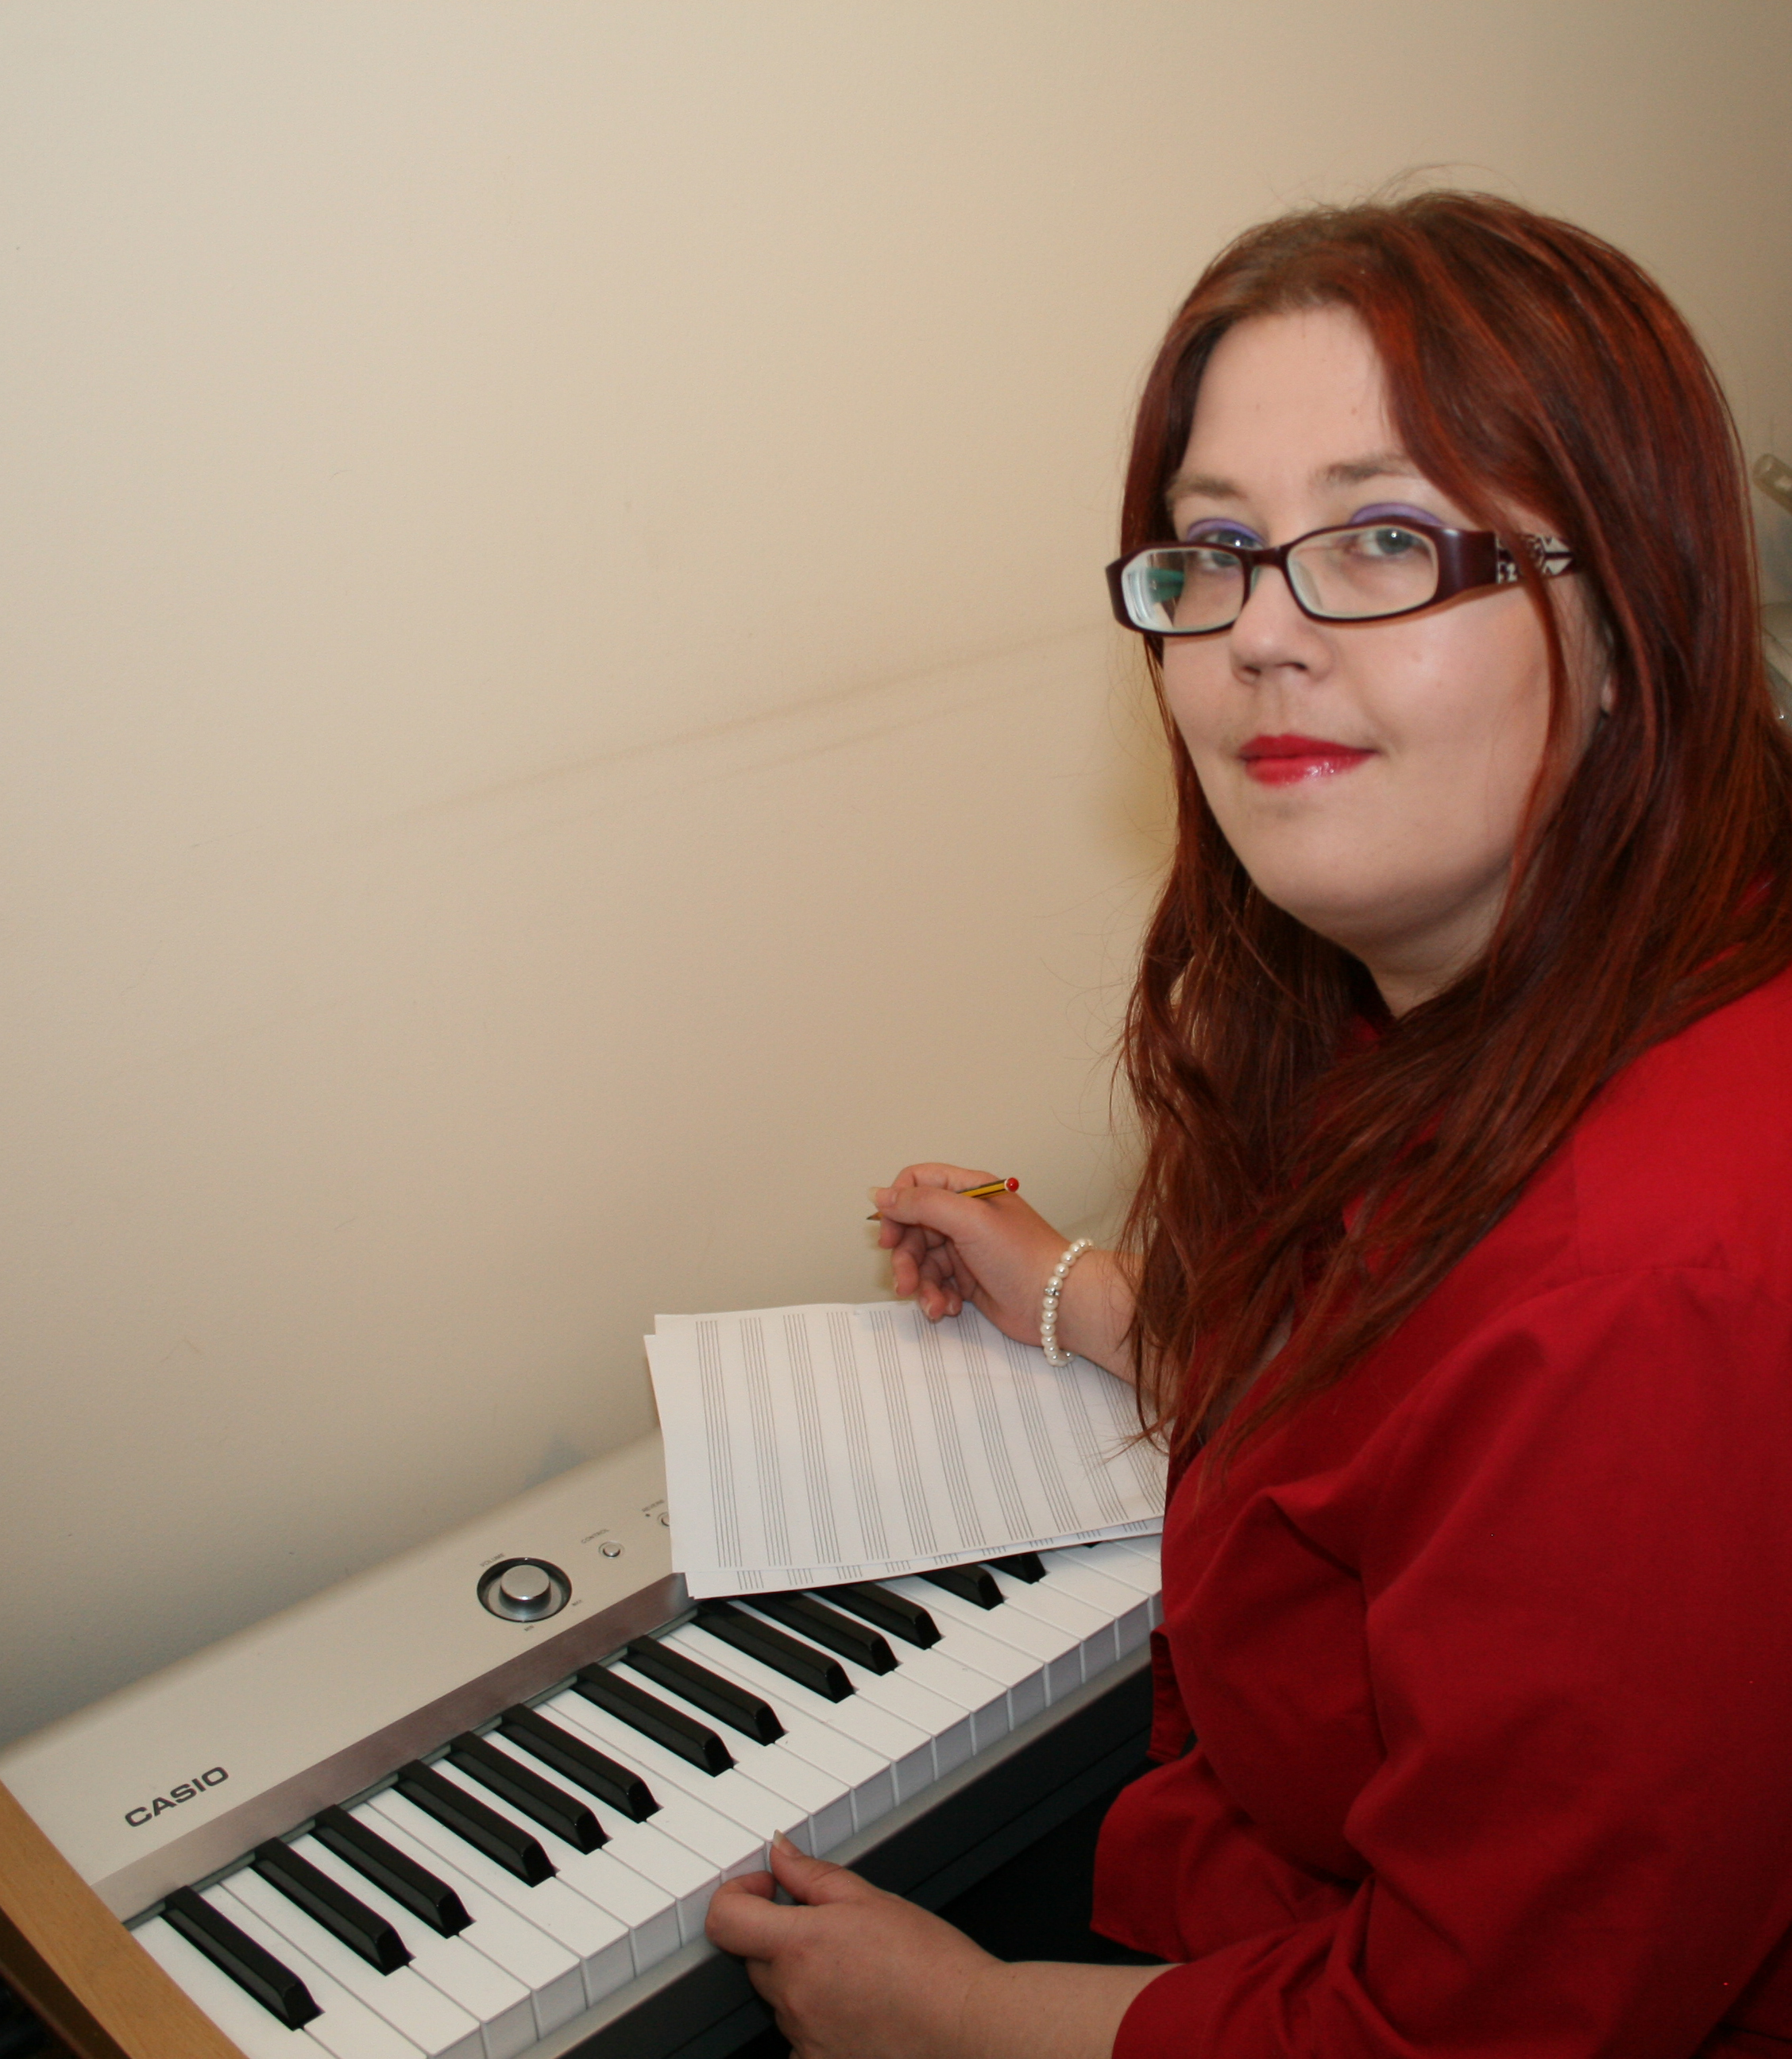 Rachael at Piano - for me.jpg